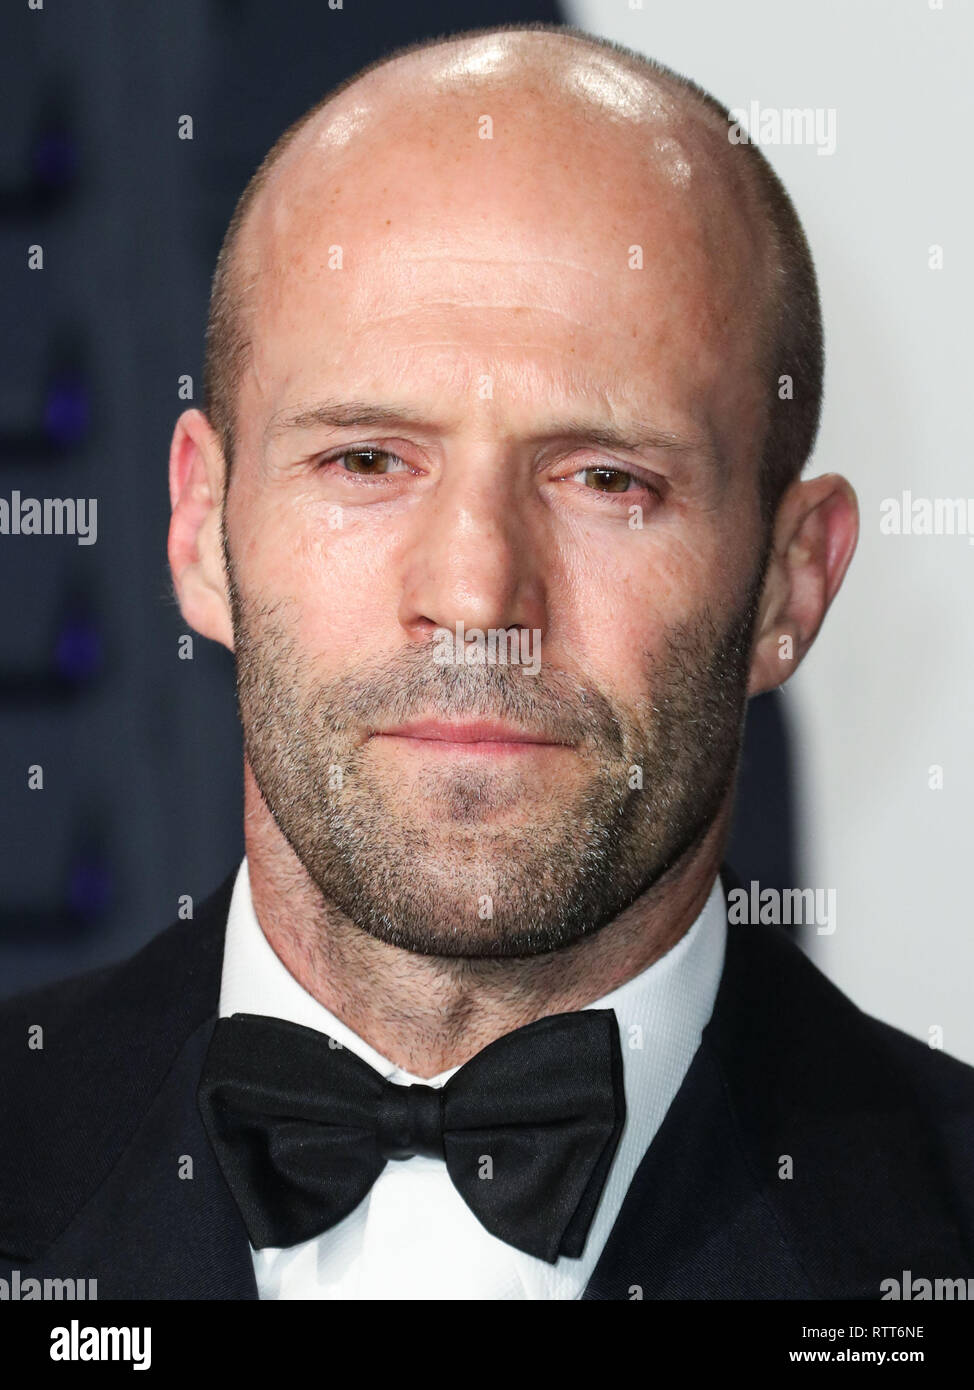 BEVERLY HILLS, LOS ANGELES, CA, USA - FEBRUARY 24: Actor Jason Statham arrives at the 2019 Vanity Fair Oscar Party held at the Wallis Annenberg Center for the Performing Arts on February 24, 2019 in Beverly Hills, Los Angeles, California, United States. (Photo by Xavier Collin/Image Press Agency) Stock Photo